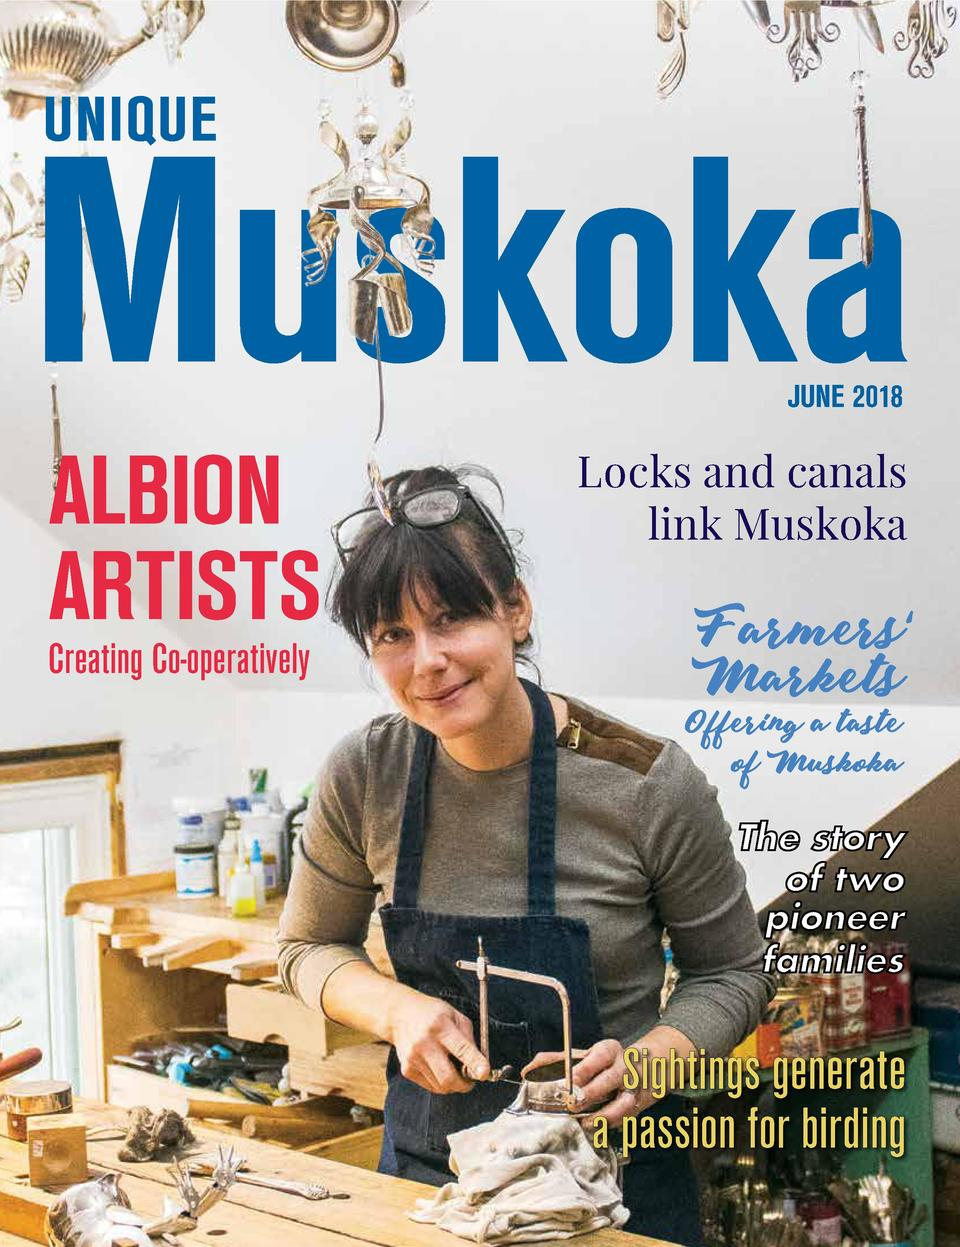 JUNE 2018  ALBION ARTISTS  Locks and canals link Muskoka  Creating Co-operatively  The story of two pioneer families  Sigh...